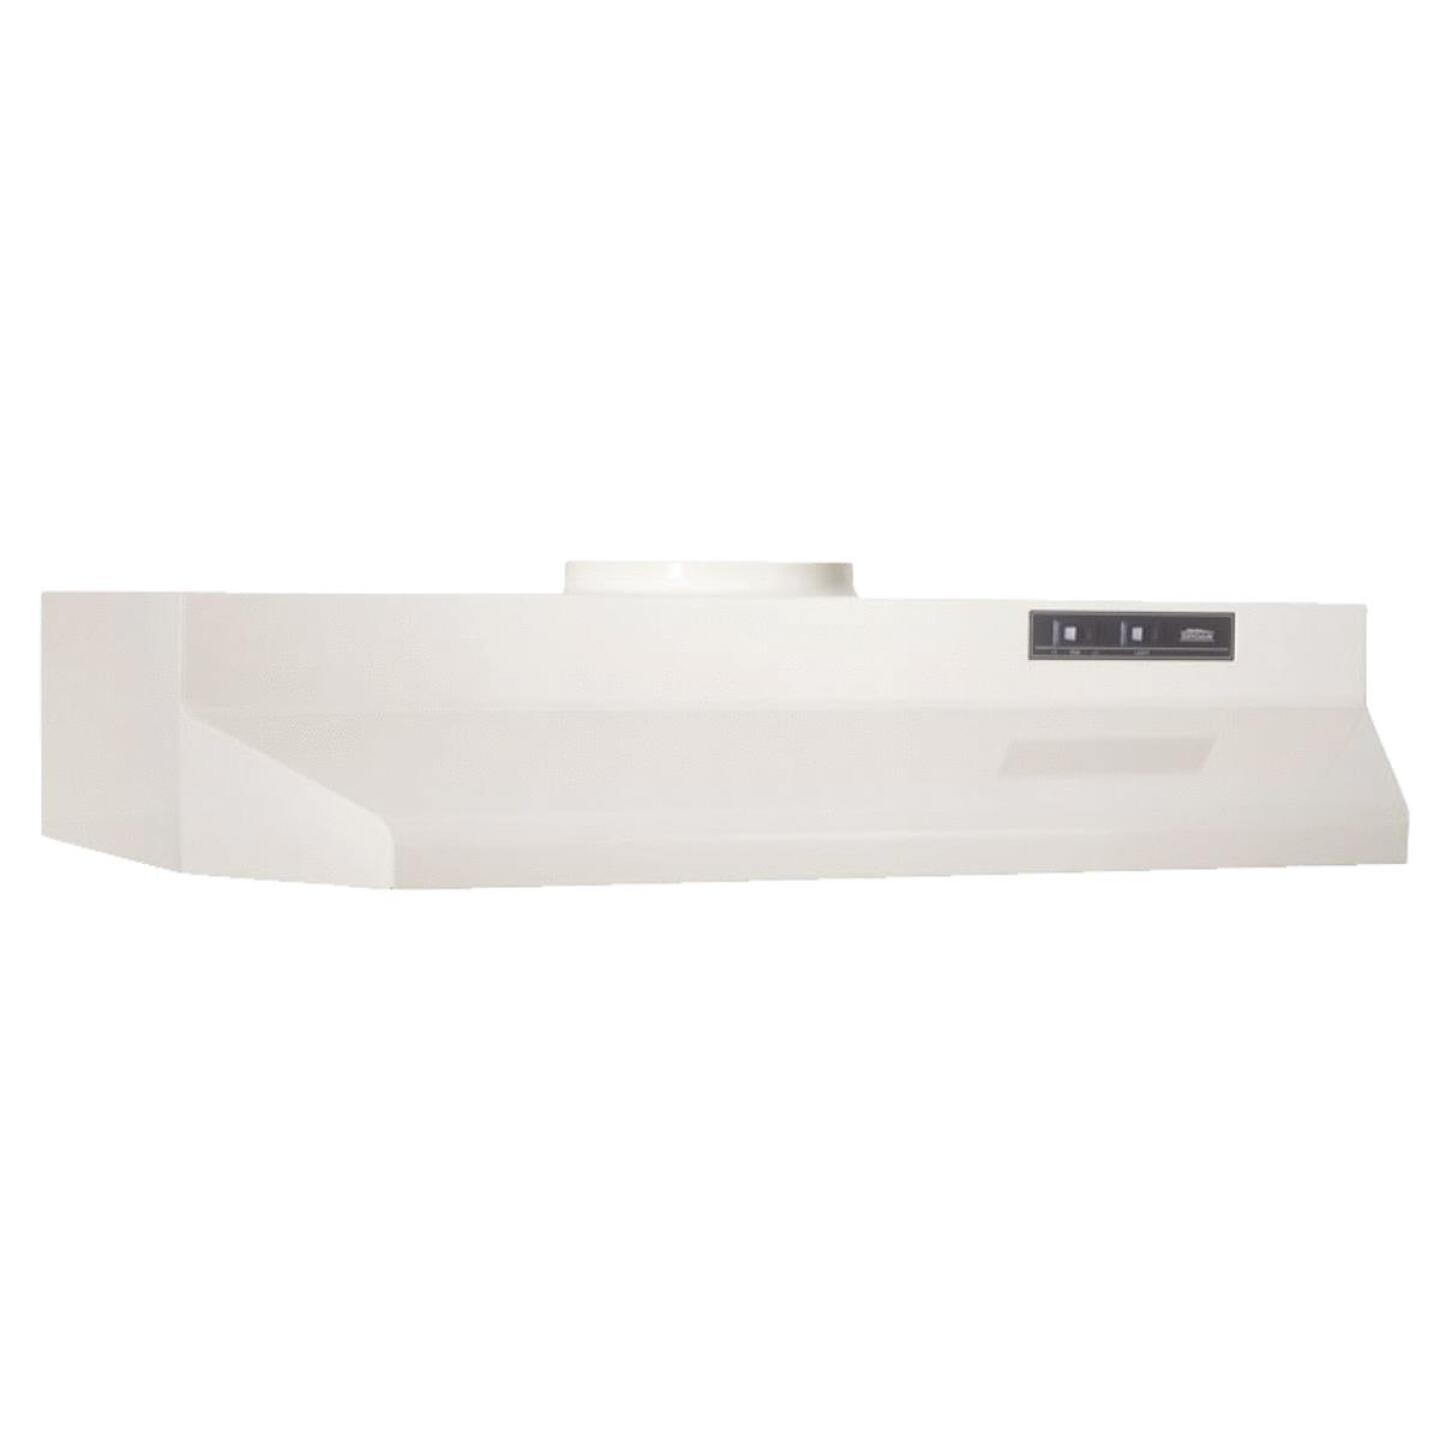 Broan-Nutone F Series 30 In. Convertible Almond Range Hood Image 1